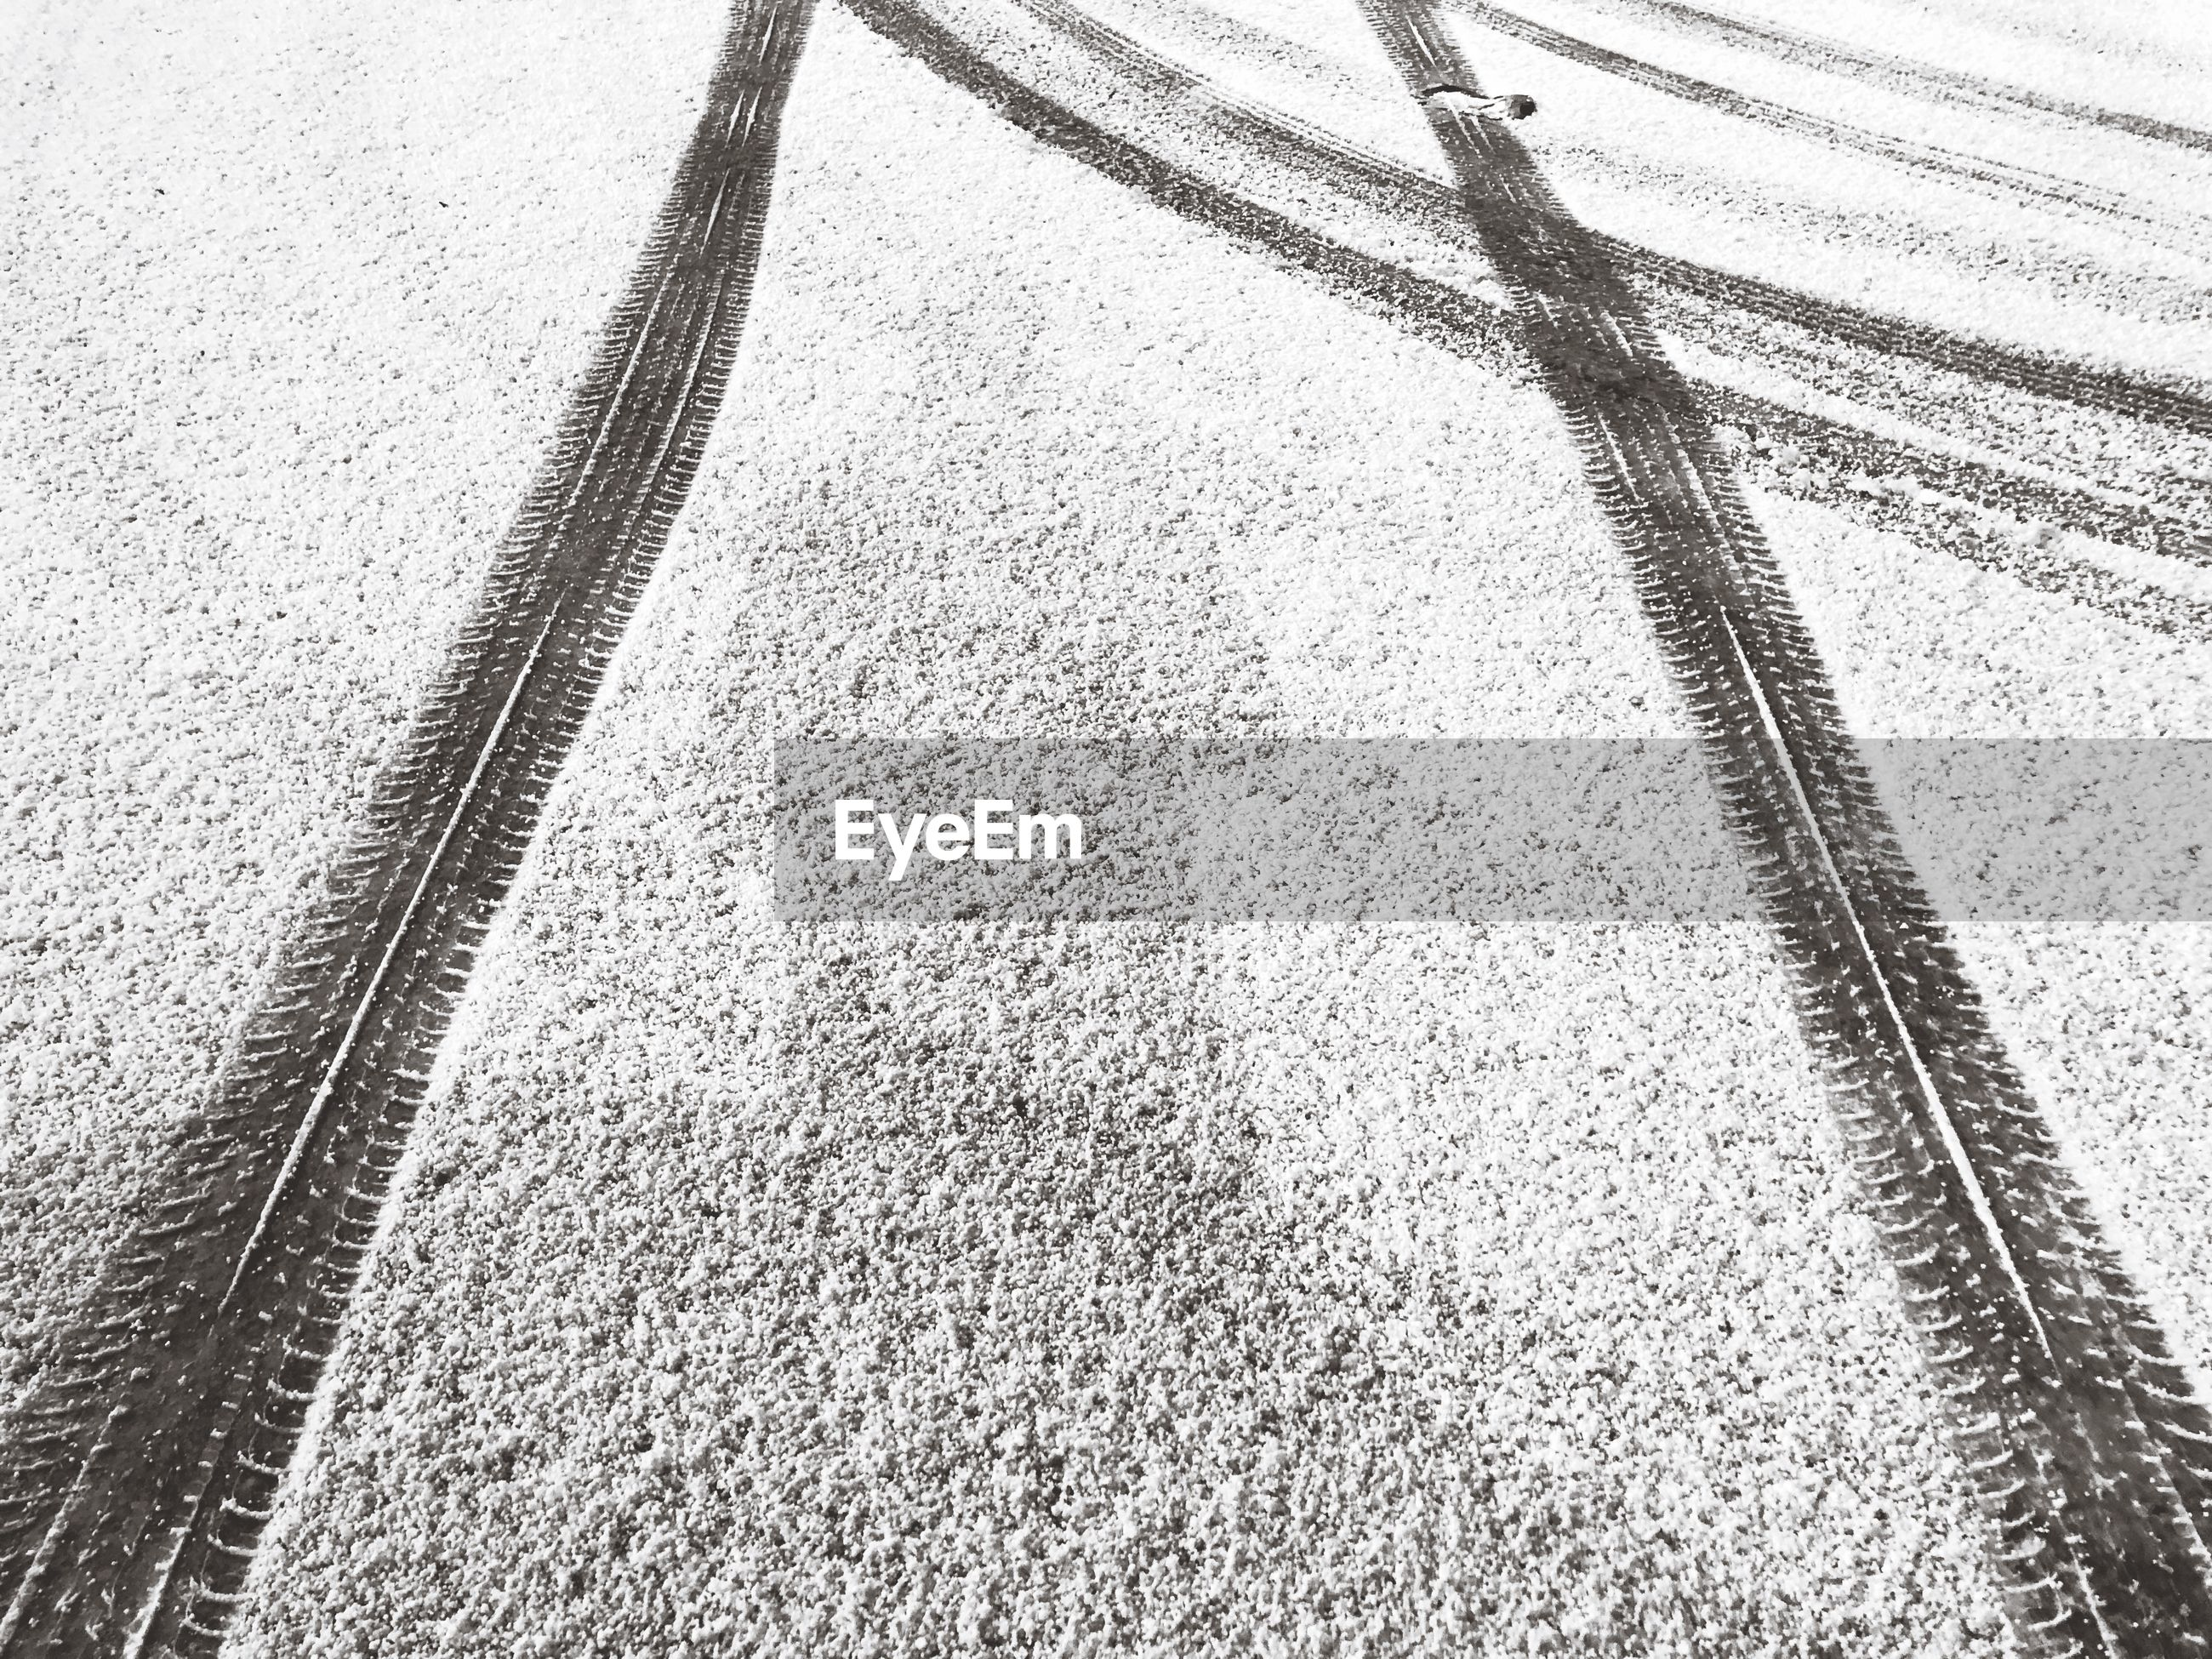 High angle view of tire tracks on snow covered land